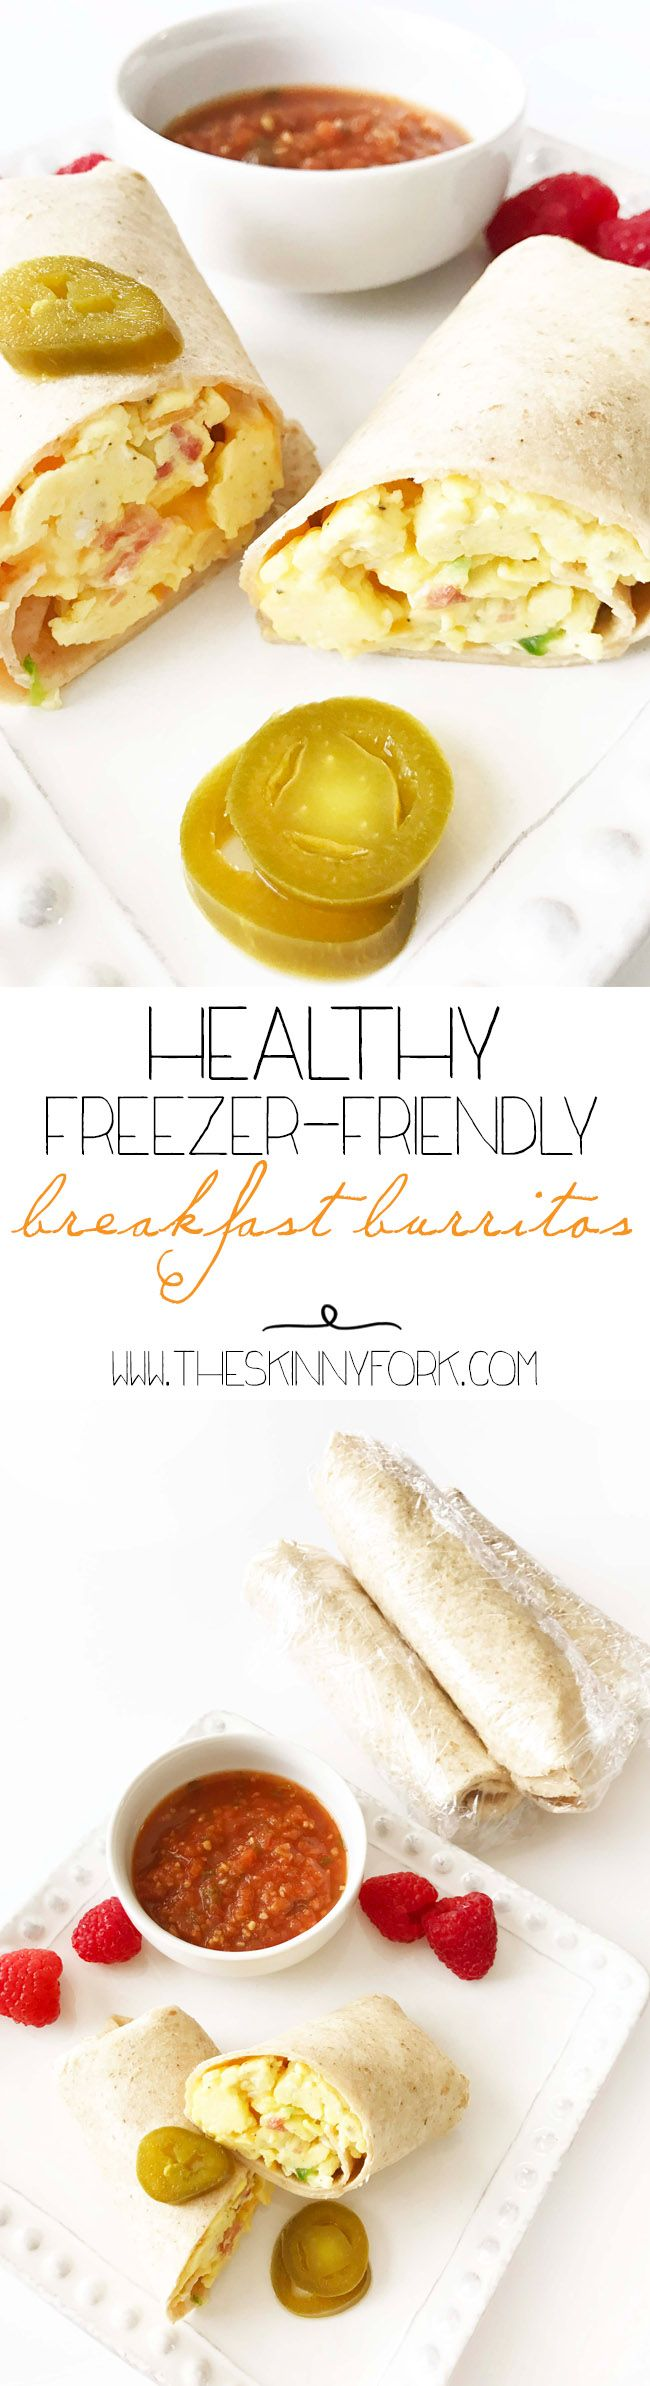 Check out these NEW New new Healthy Freezer-Friendly Breakfast Burritos! Sunday is a perfect day for meal prep and these freezer breakfast burritos are a great option for breakfast!  Just re-heat and eat during the bust week days. TheSkinnyFork.com | Skinny & Healthy Recipes